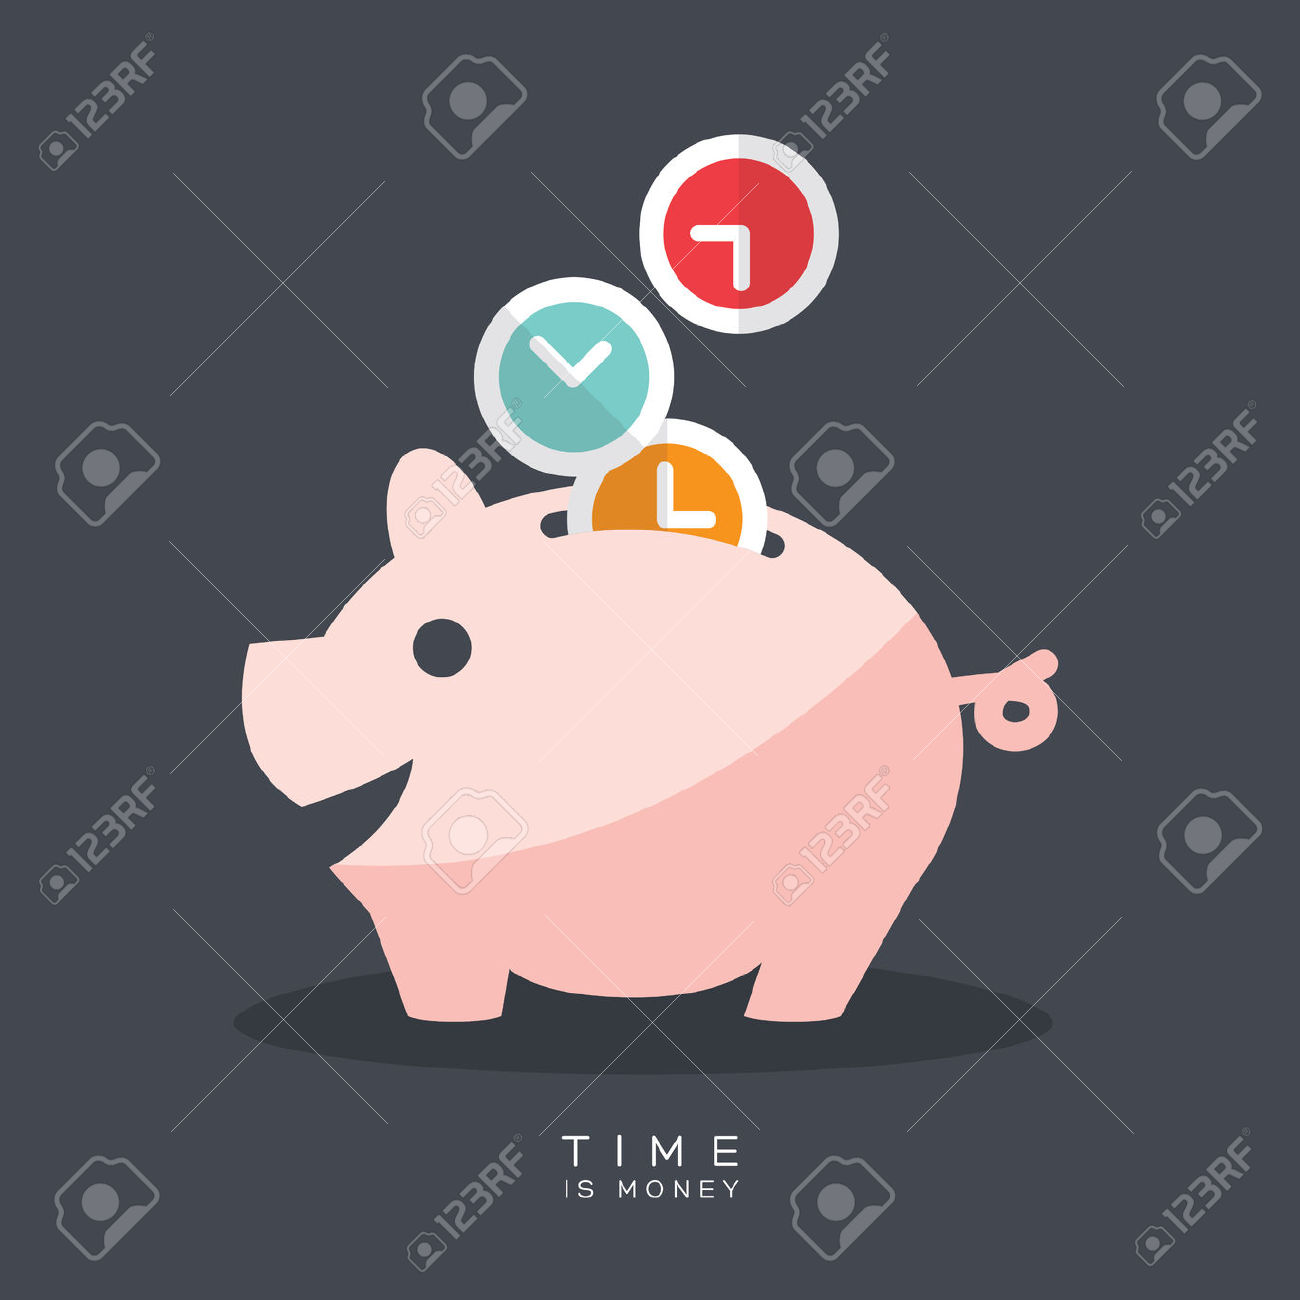 Smashed open piggy bank clipart image royalty free 32,966 Piggy Bank Cliparts, Stock Vector And Royalty Free Piggy ... image royalty free